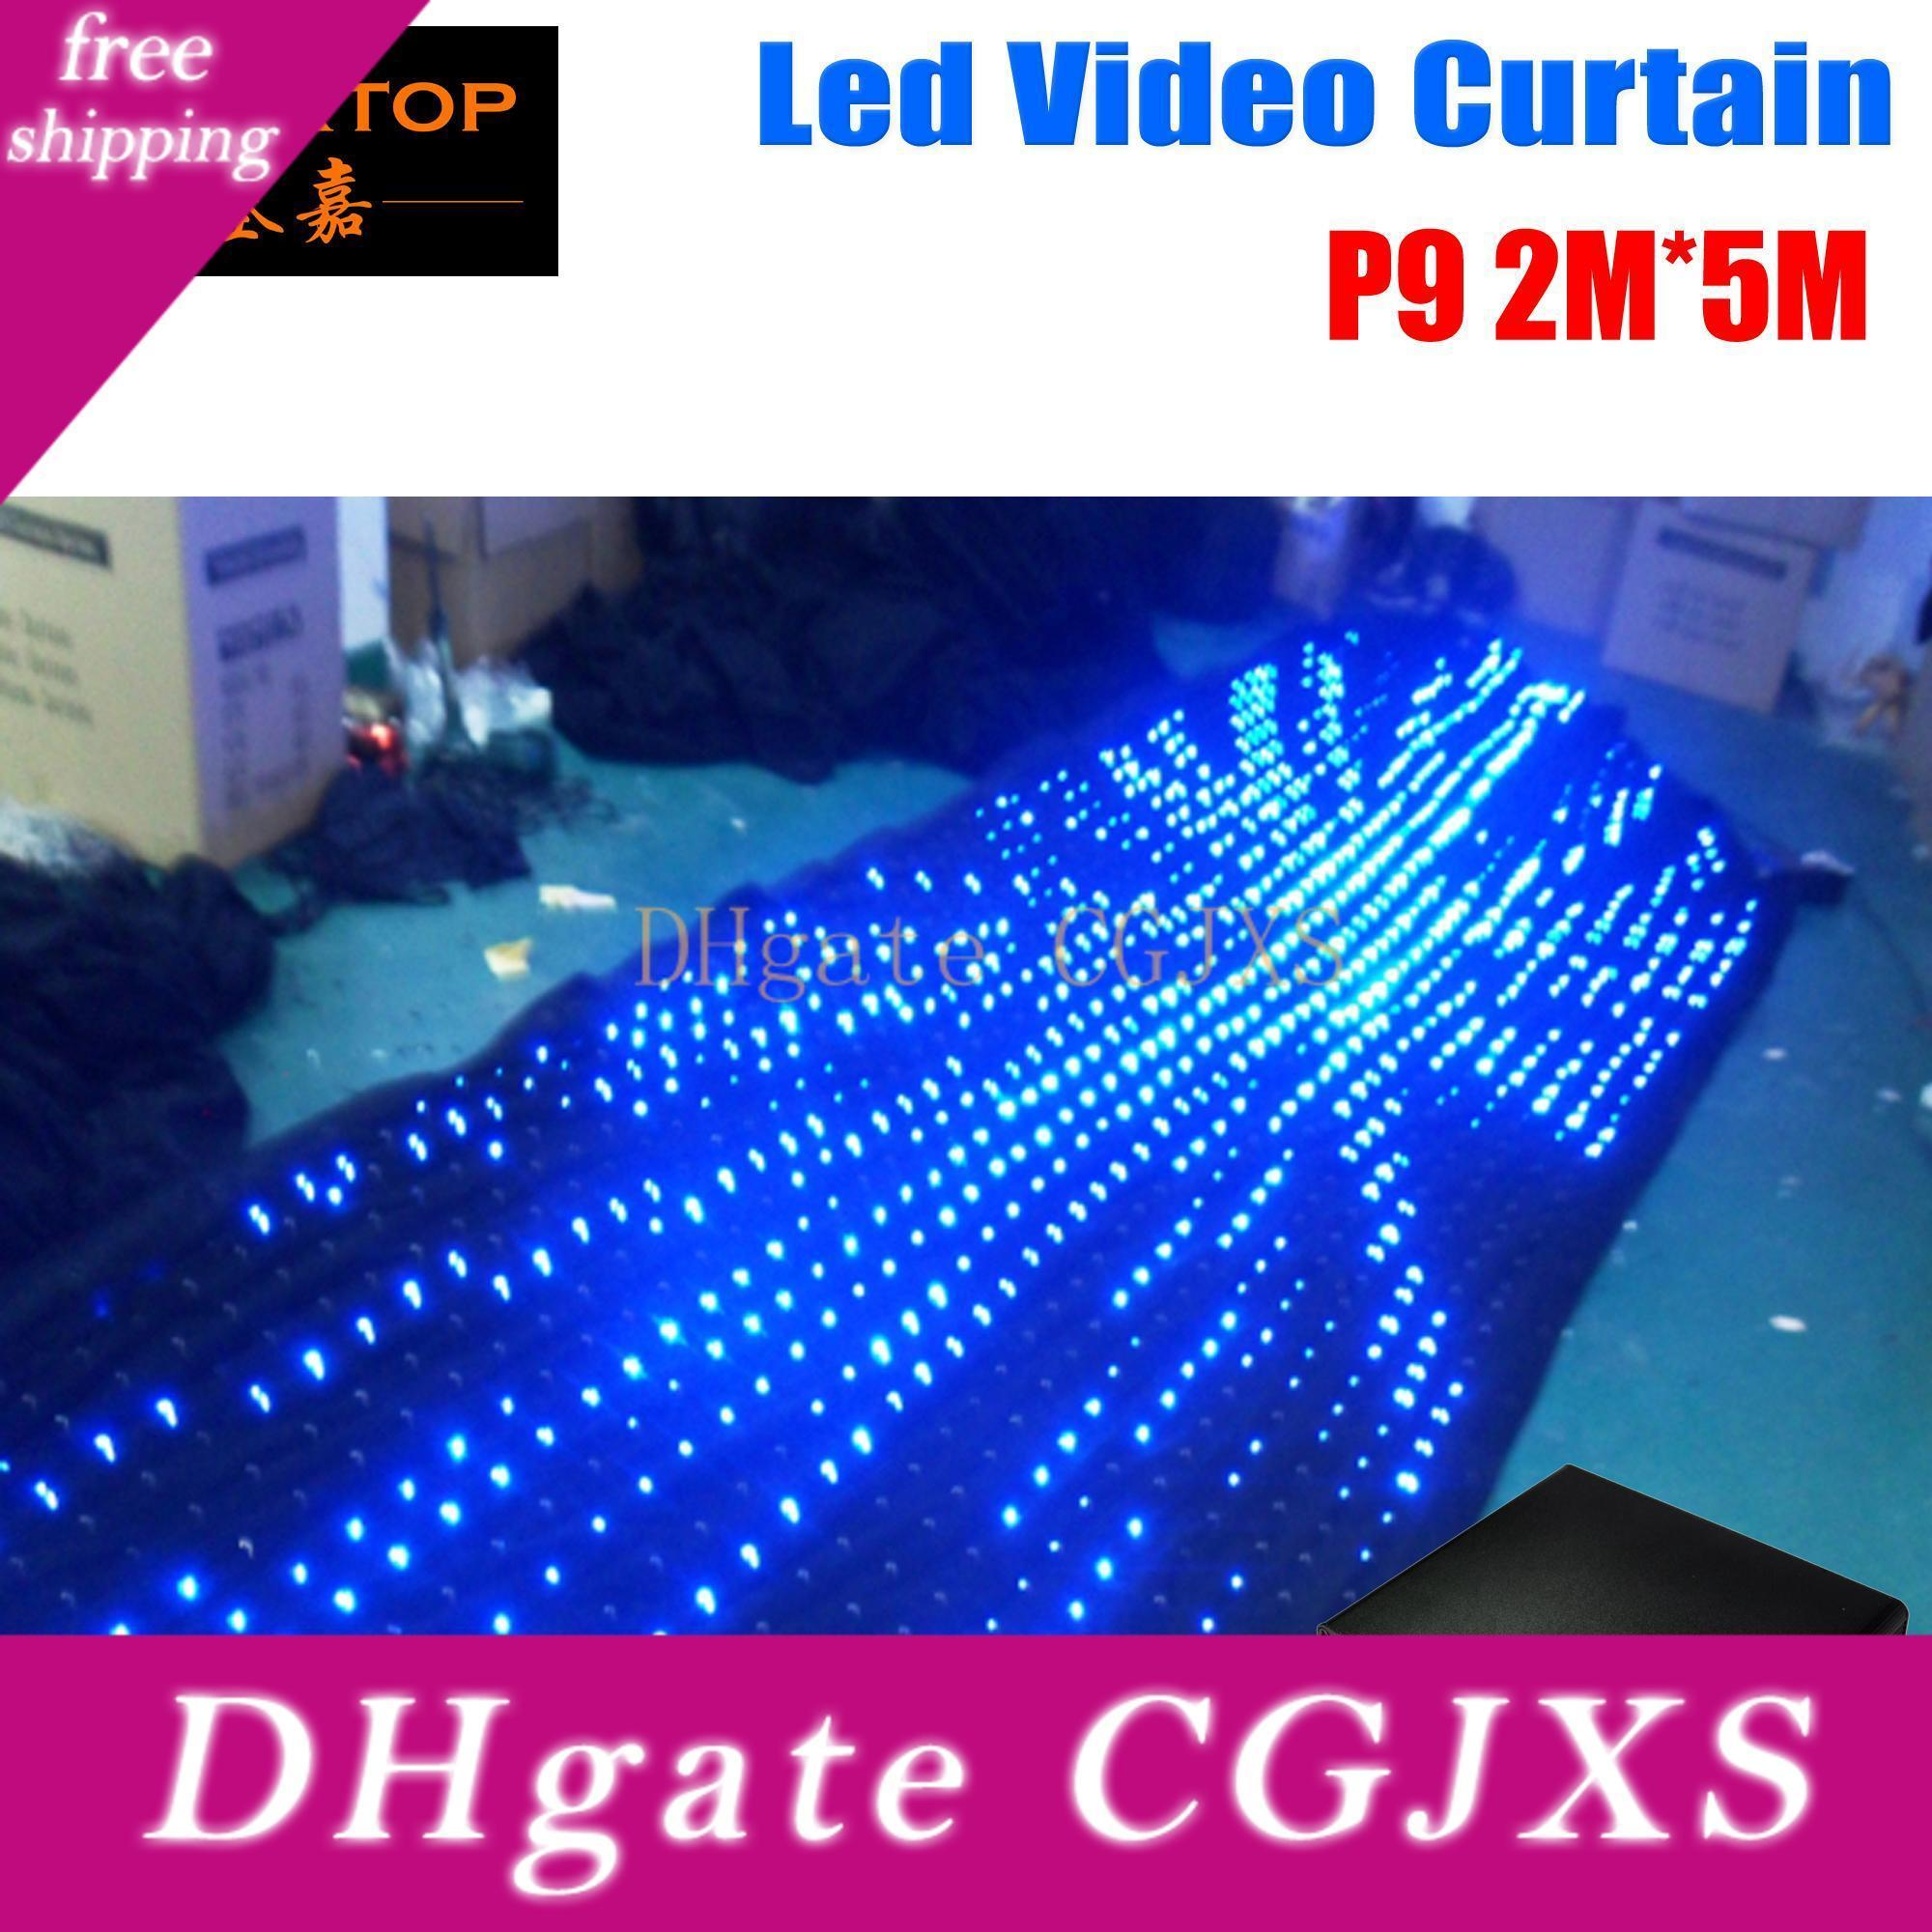 Freeshipping Tiptop 2 Meter Height 5 Meter Length Dmx /Manual /Computer Control Led Video Curtain Black Color Fire Proof Velvet Cloth Ce Roh